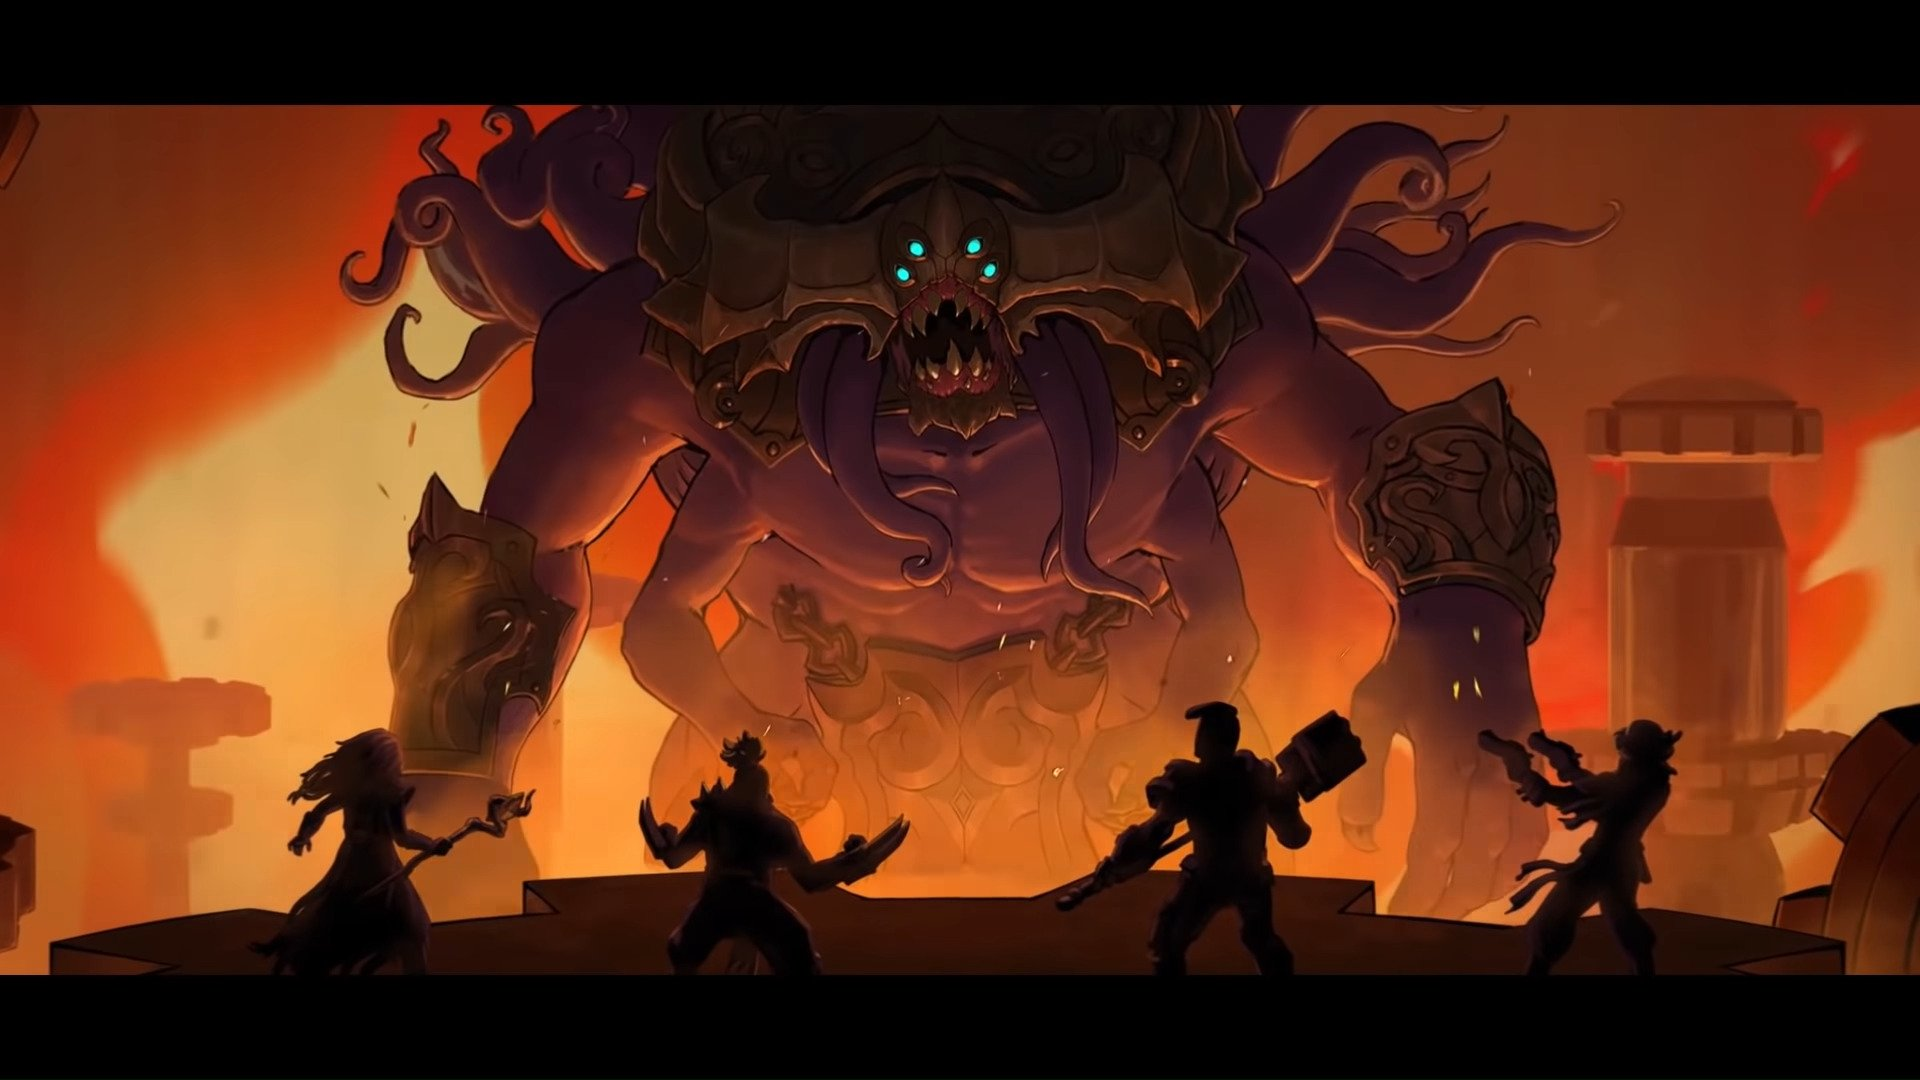 Torchlight 3 Leaves Early Access This Week, But Will The Full Release Be Enough To Reverse The Poor Reviews?